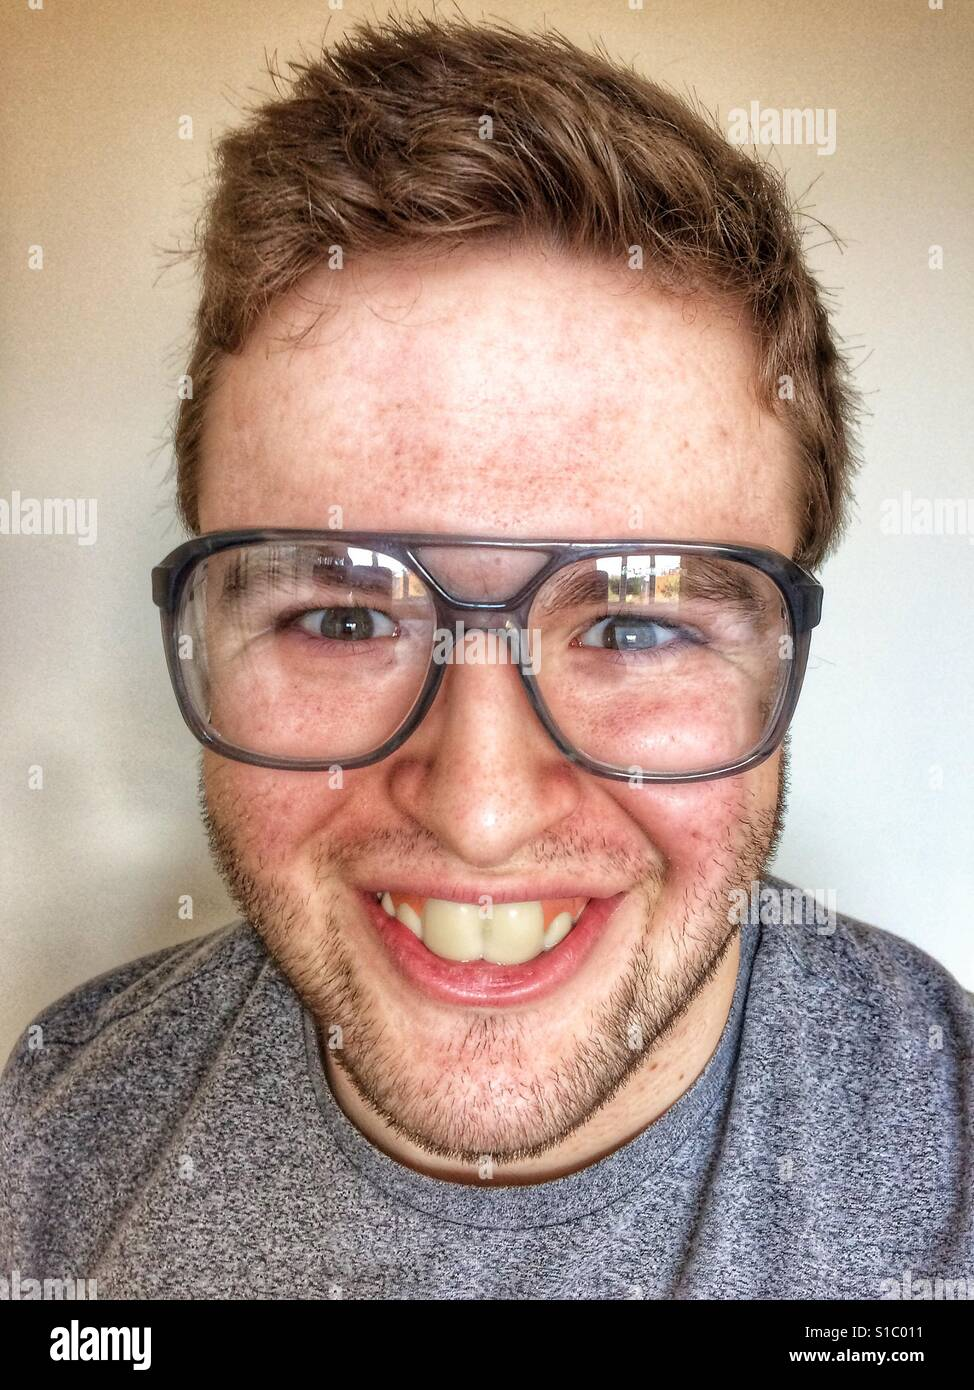 Laughing nerd with buck teeth and big glasses looking straight at the camera. - Stock Image